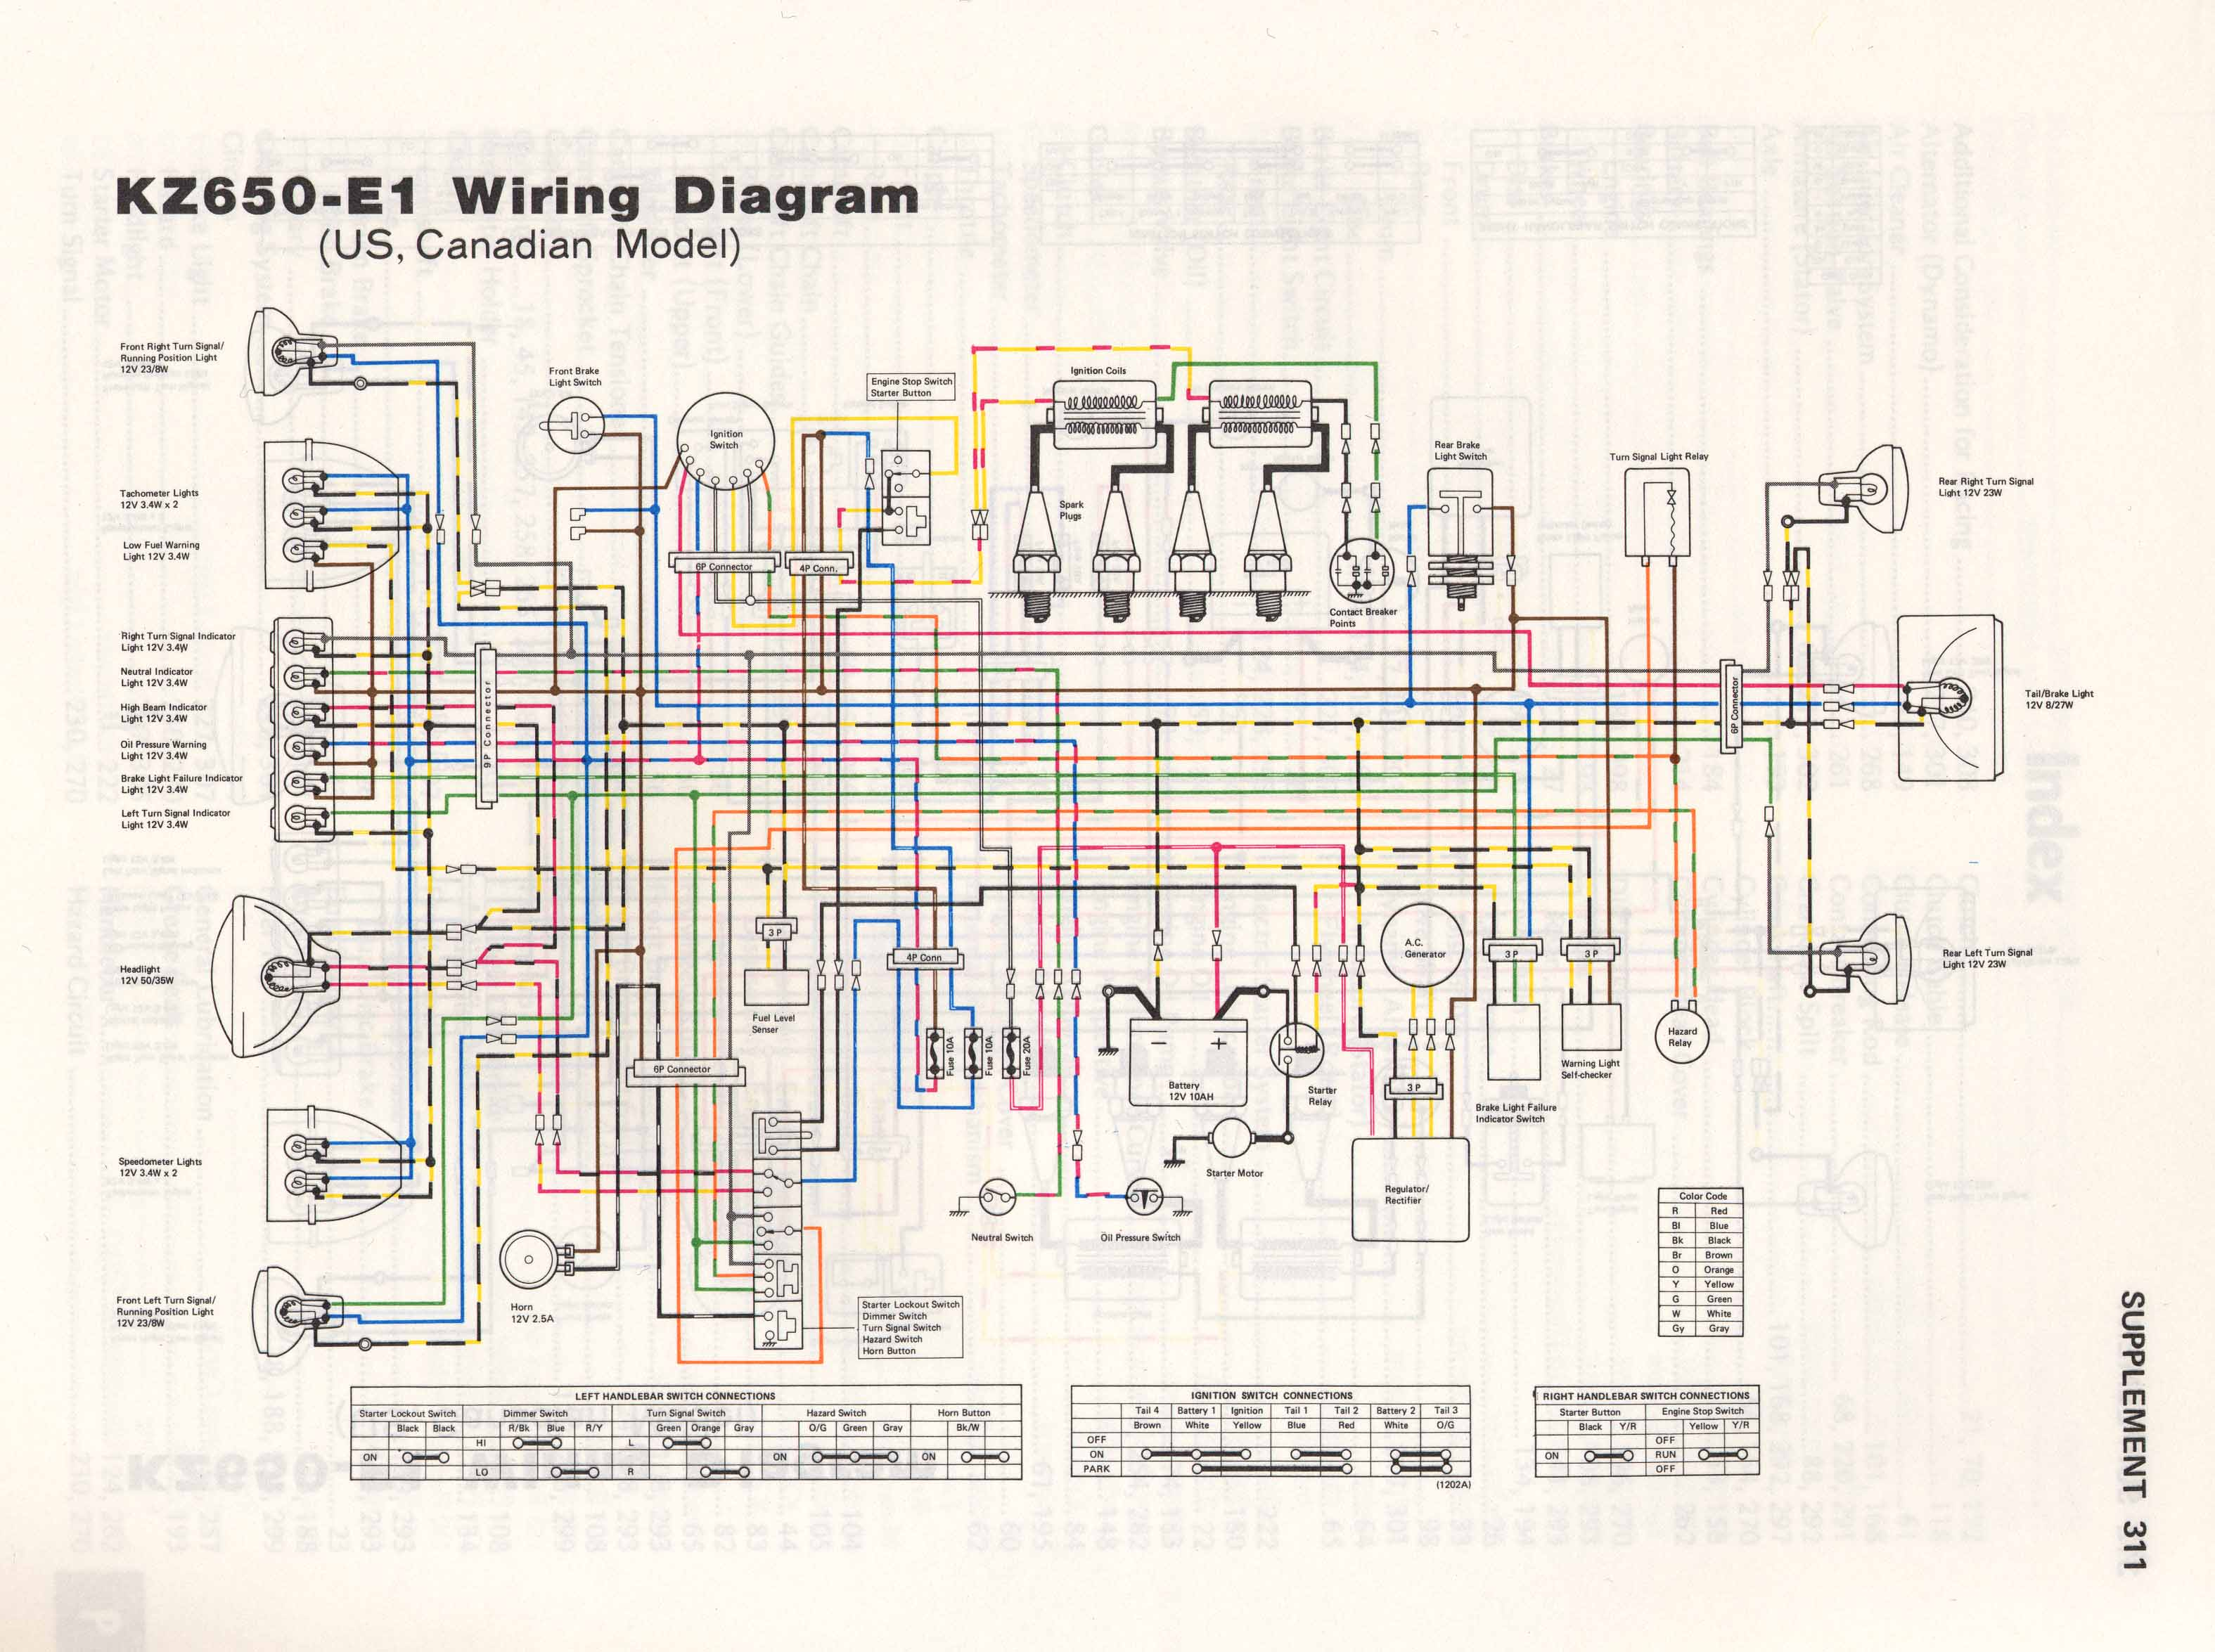 KZ650 E1 kz650 info wiring diagrams 1980 kz650 wiring diagram at alyssarenee.co